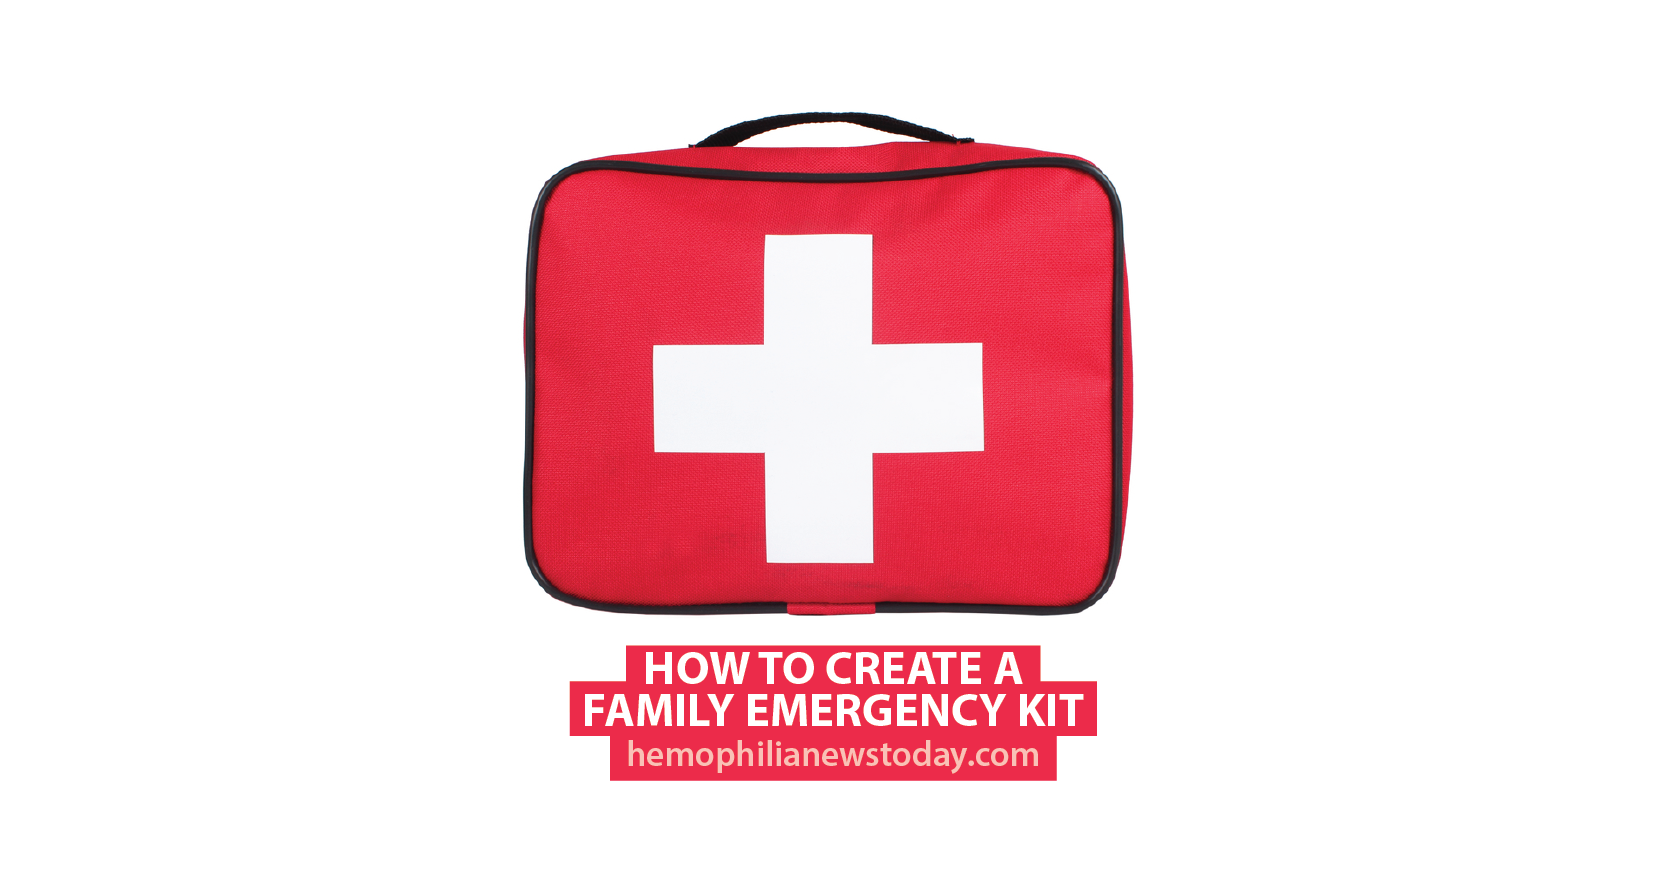 how to create a family emergency kit hemophilia news today